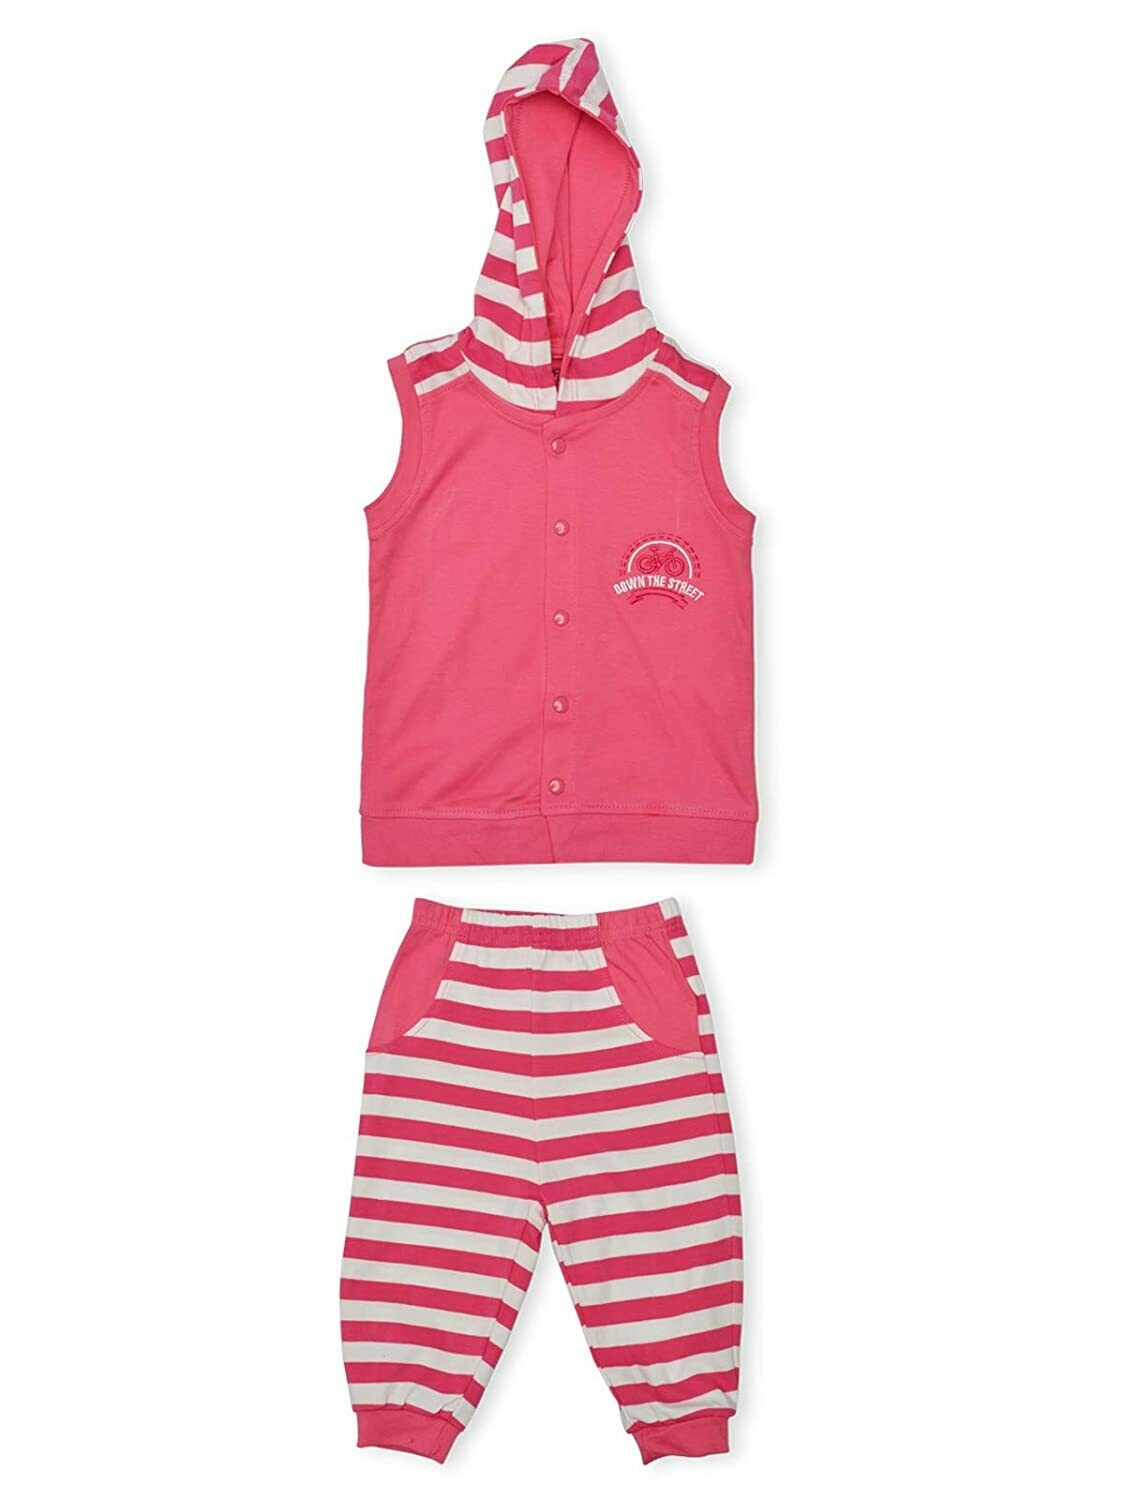 Mable Fuchsia Sleeveless Hooded T-shirt with Stripped Pant for Boys